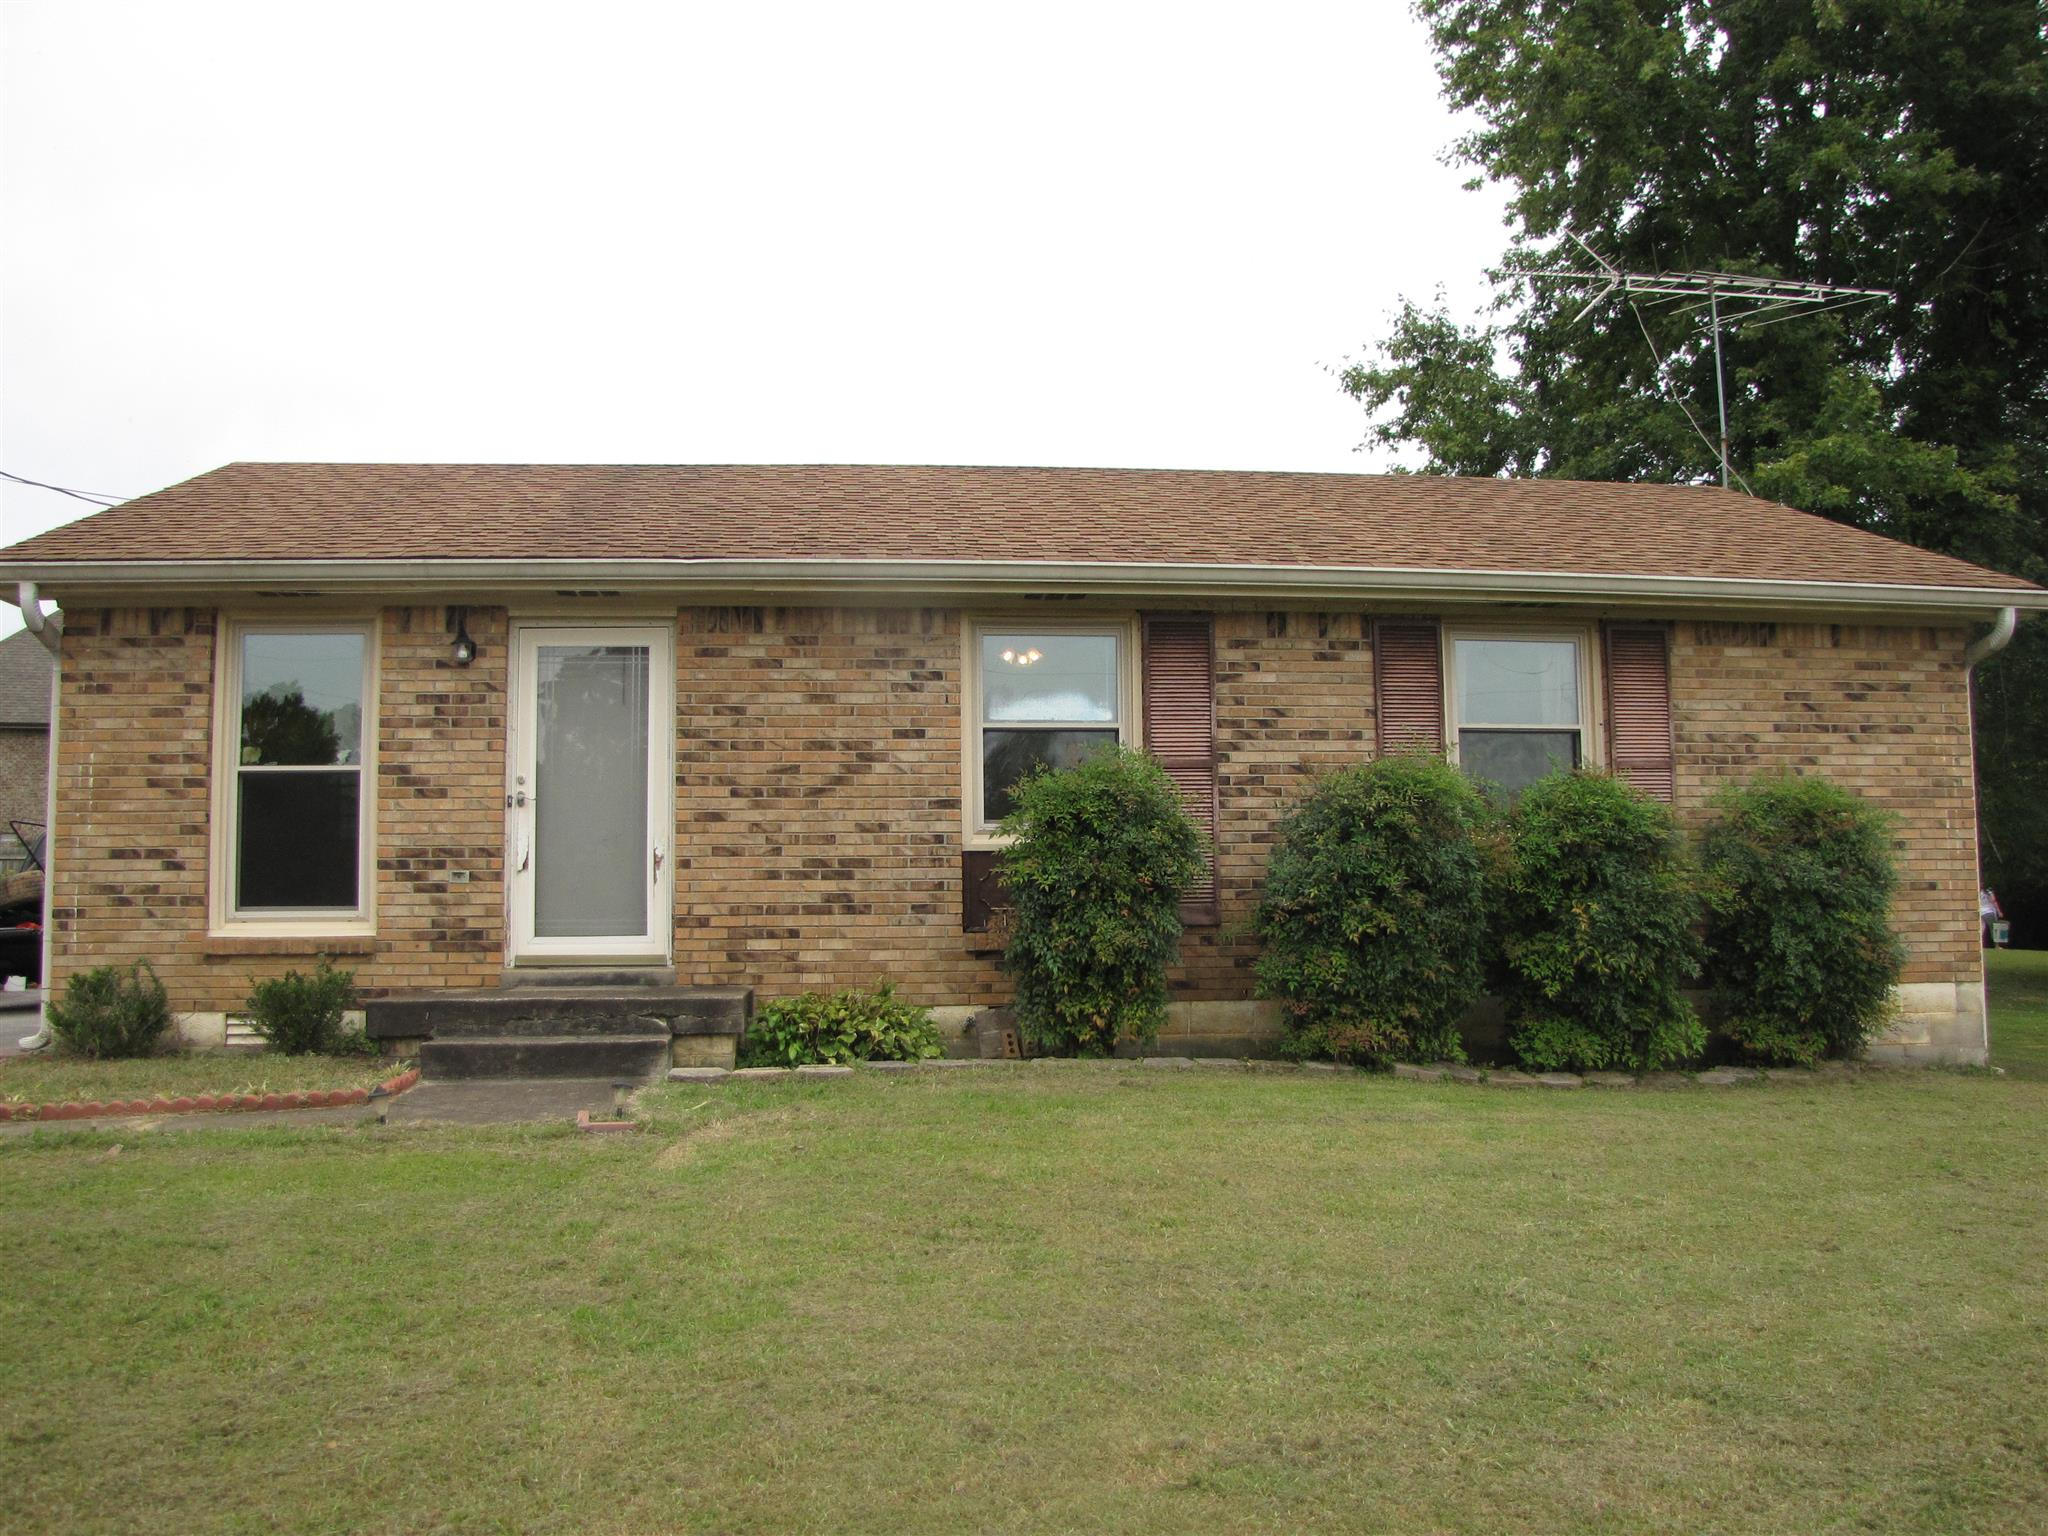 Photo of 1318 Shady Lawn Dr  Clarksville  TN